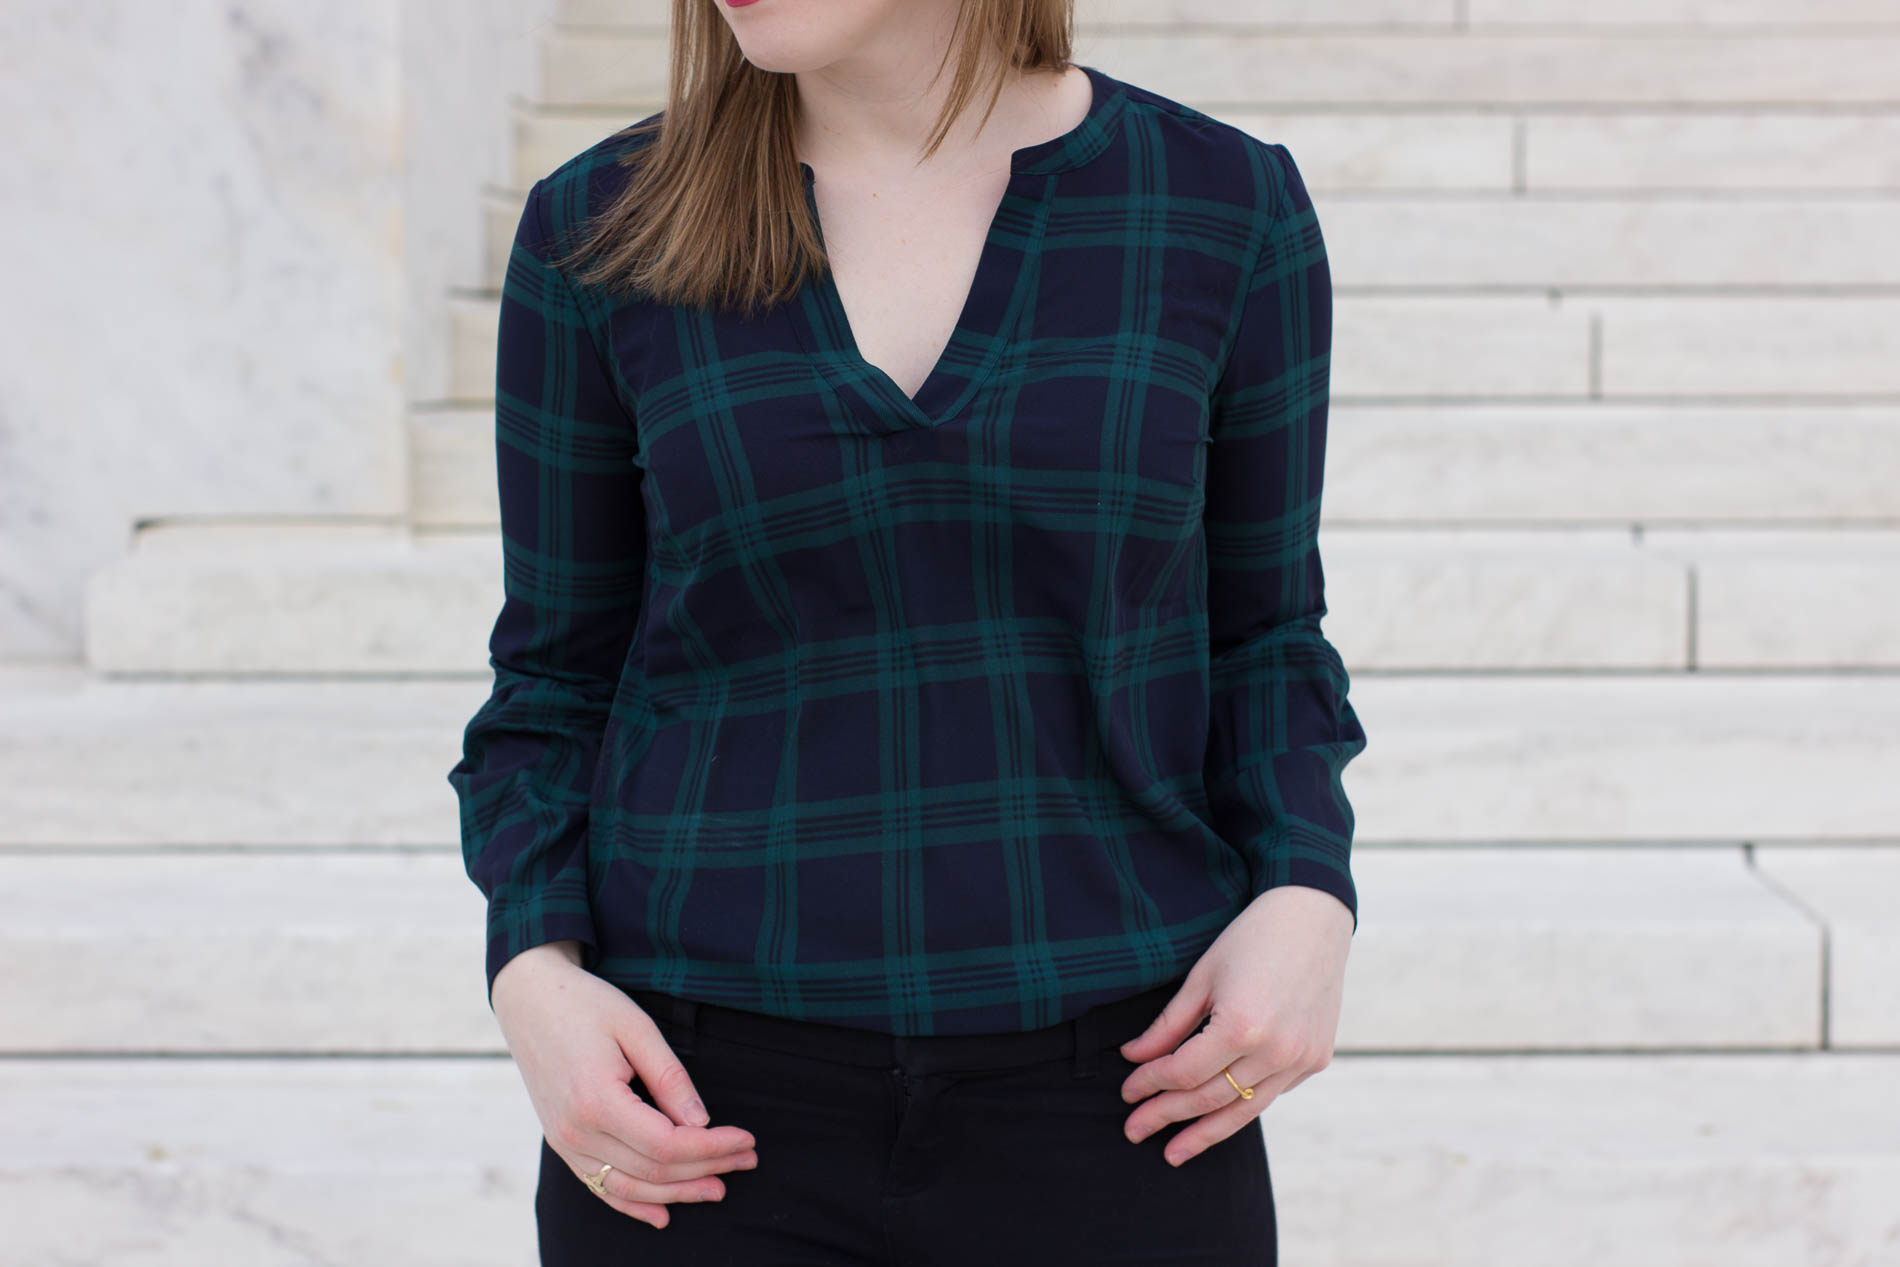 The Office Holiday Party   Something Good, @danaerinw, blackwatch plaid top